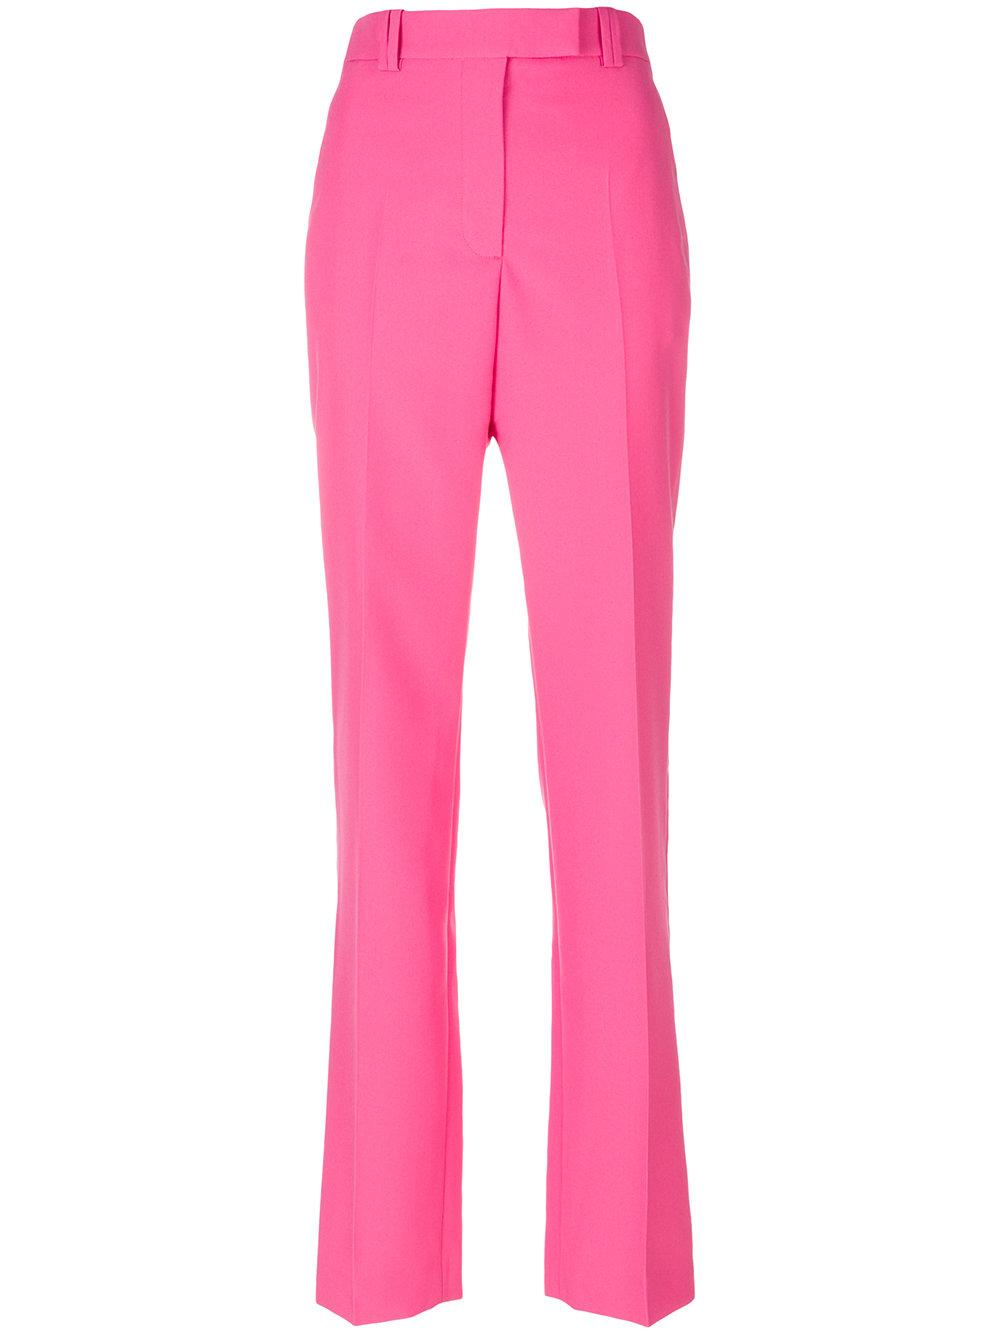 Calvin Klein 205w39nyc Tailored Contrast Trousers